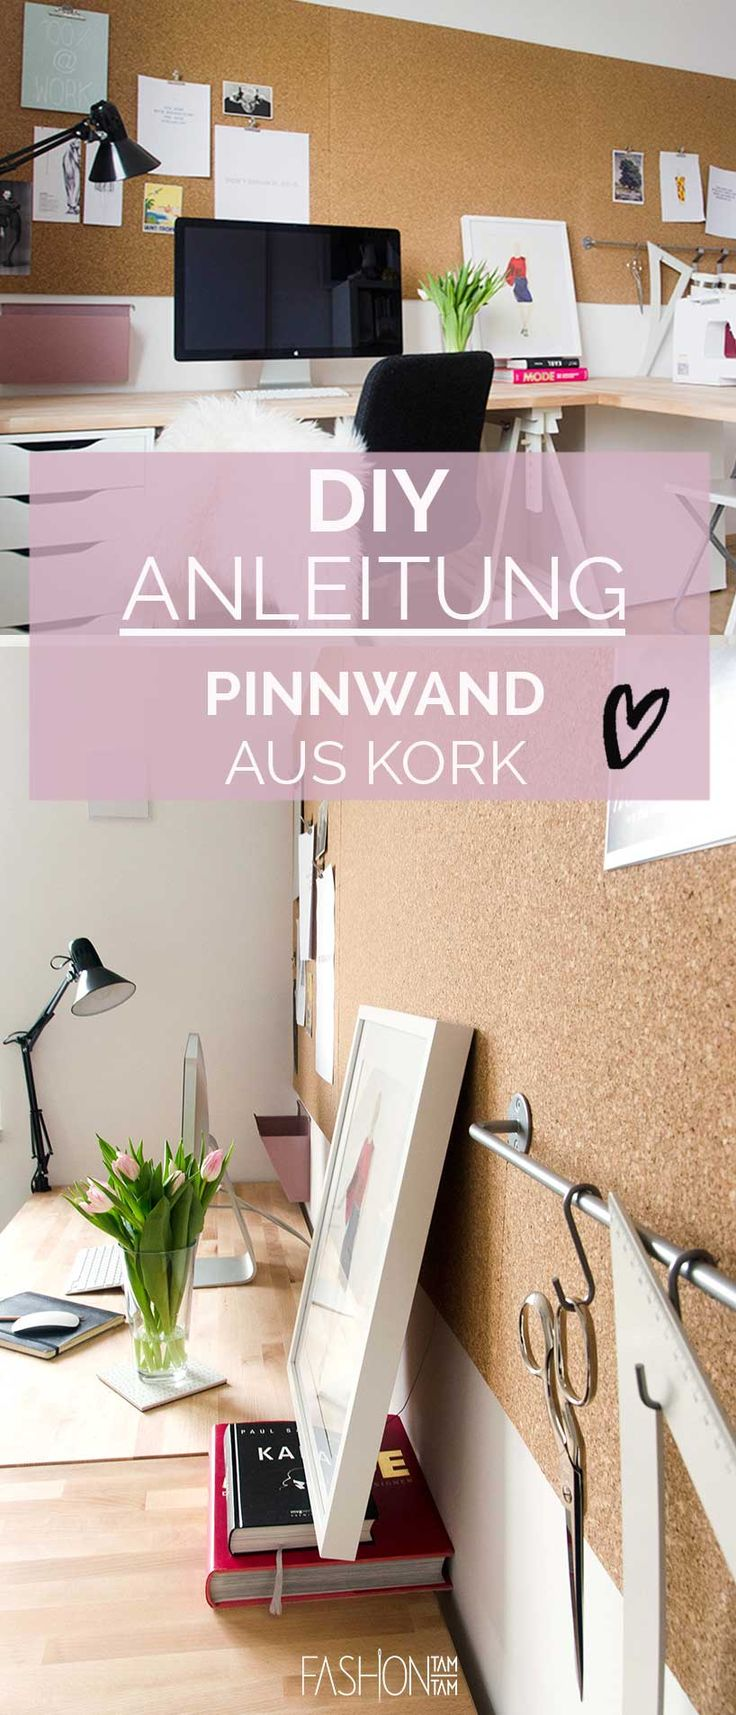 die besten 25 pinnwand kork ideen auf pinterest pinwand kork kork pinnw nde und diy pinnwand. Black Bedroom Furniture Sets. Home Design Ideas